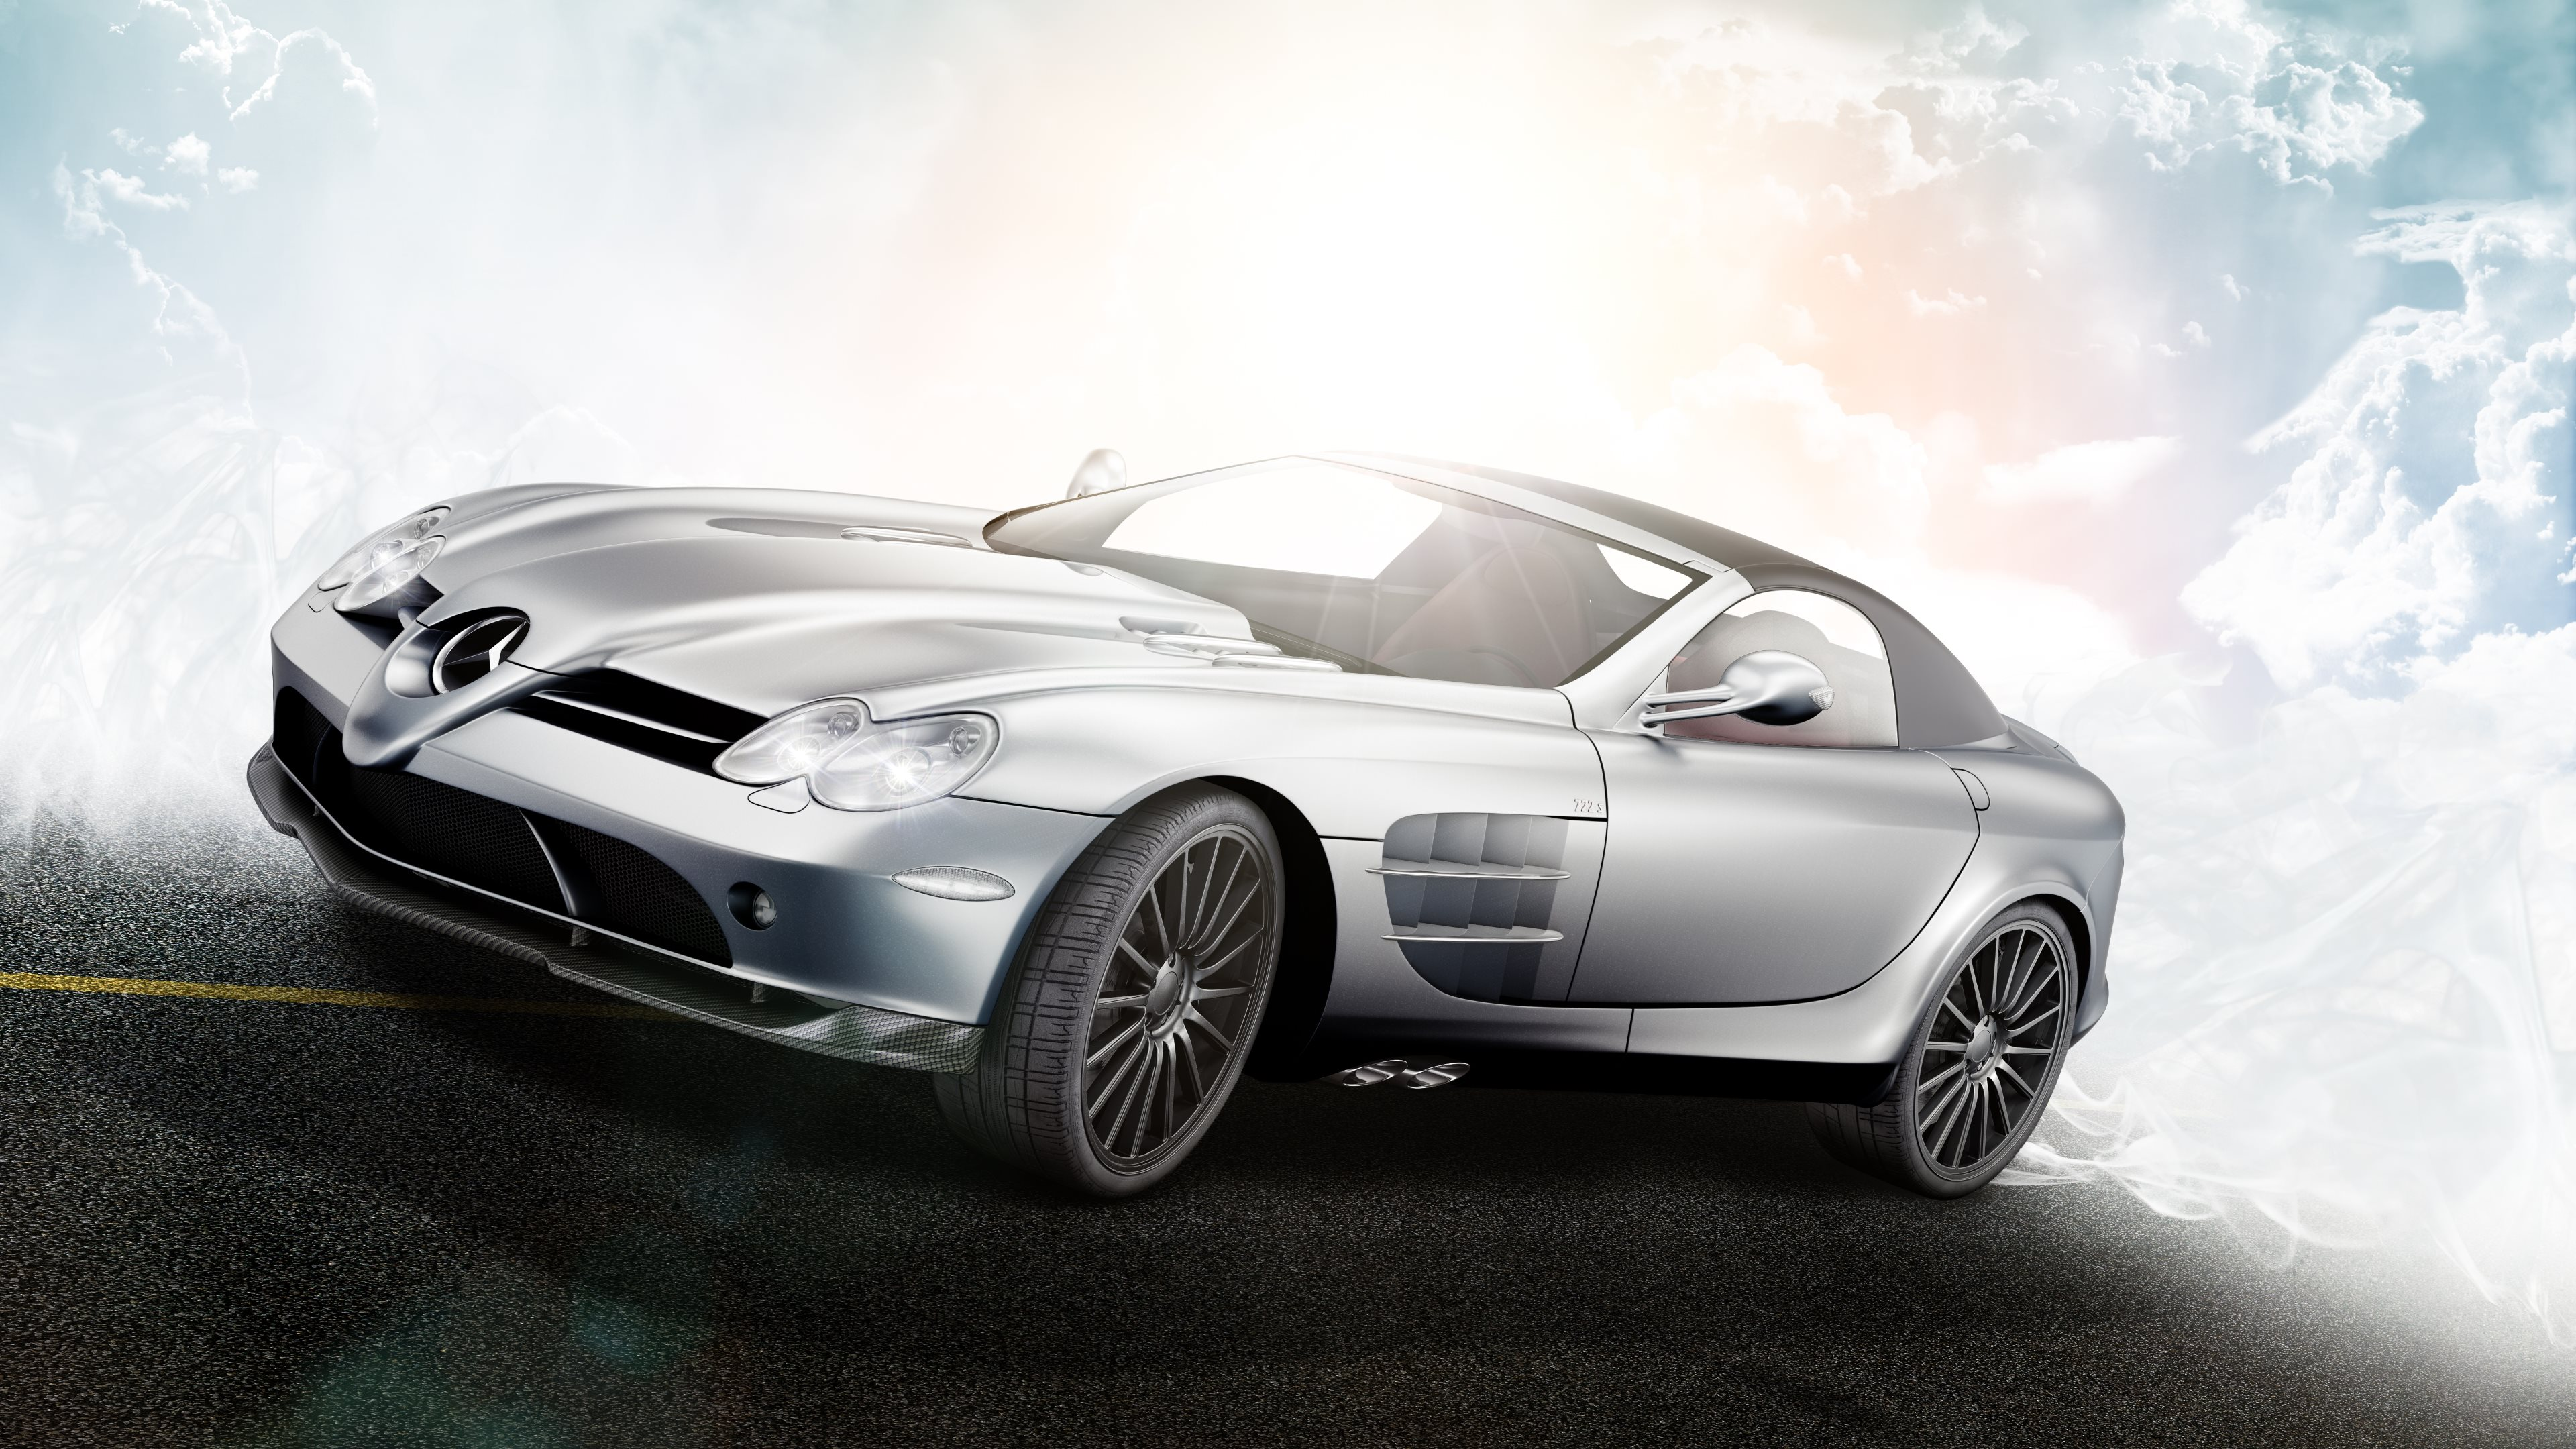 mercedes benz mclaren slr 722 s 4k wallpapers. Black Bedroom Furniture Sets. Home Design Ideas